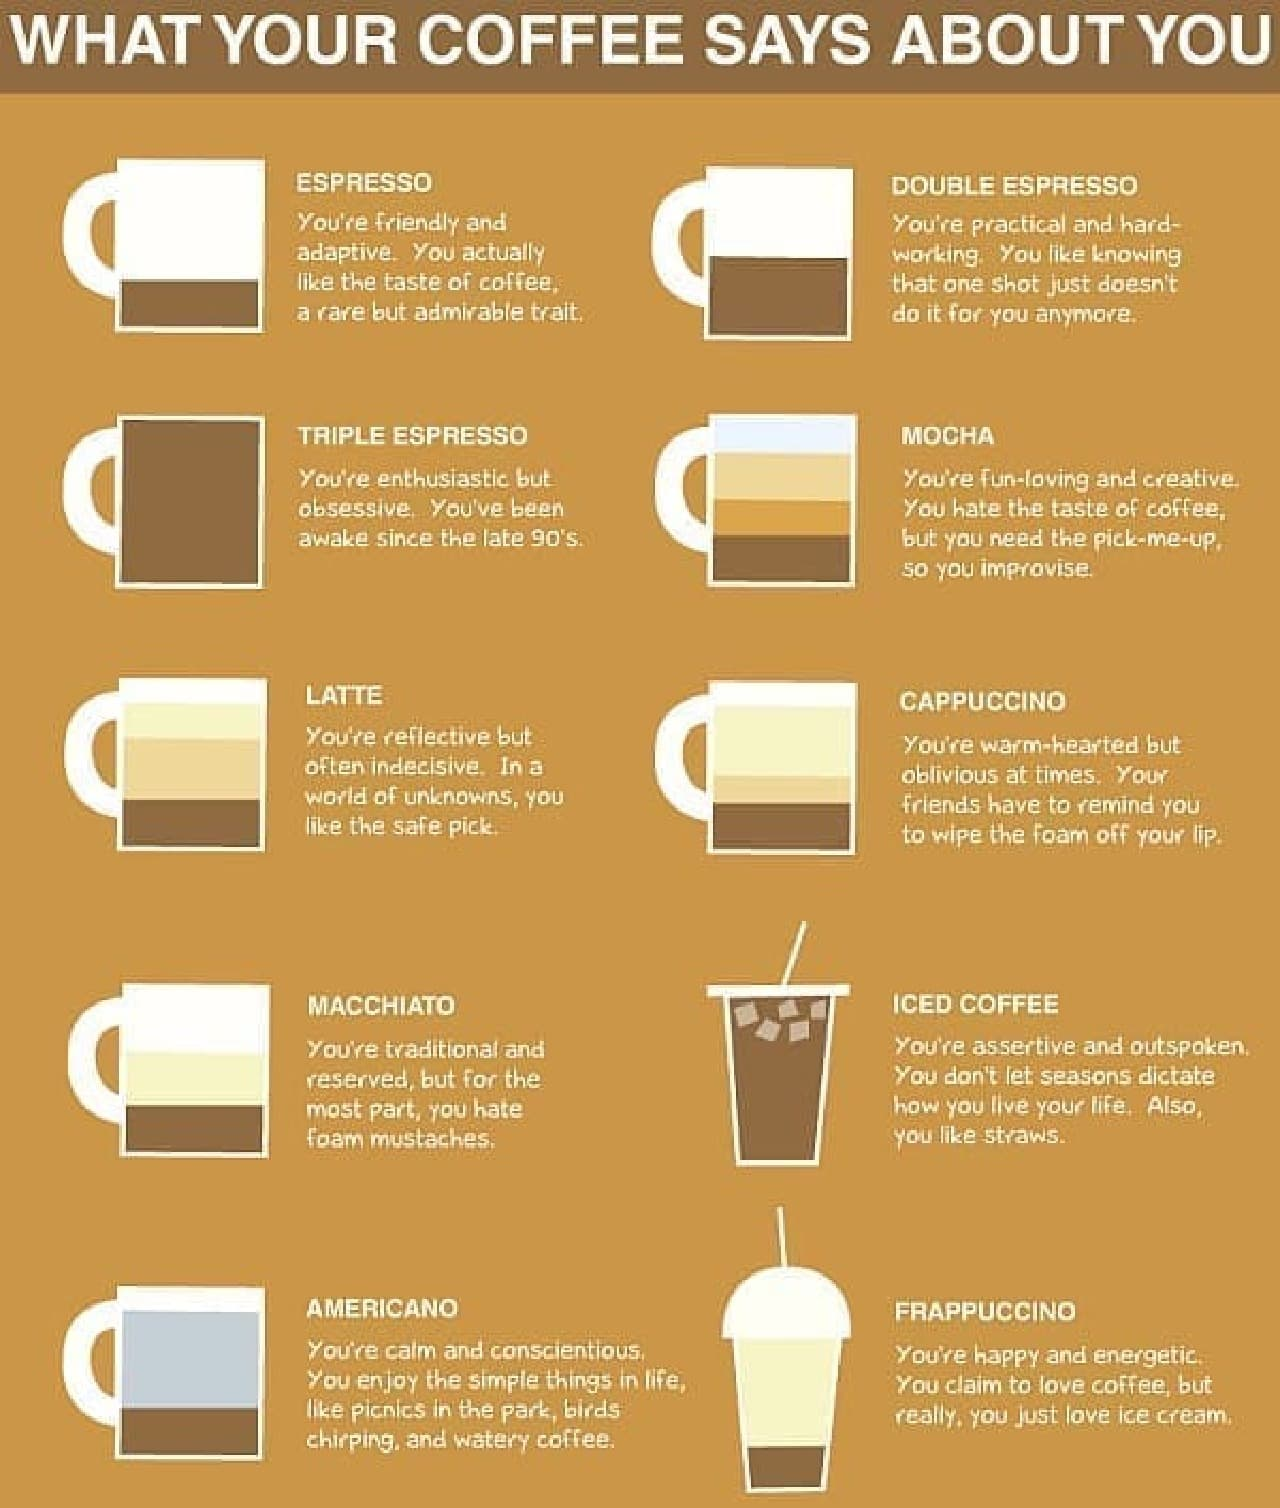 「What Your Coffee Says About You(コーヒーでわかるあなたの性格)」